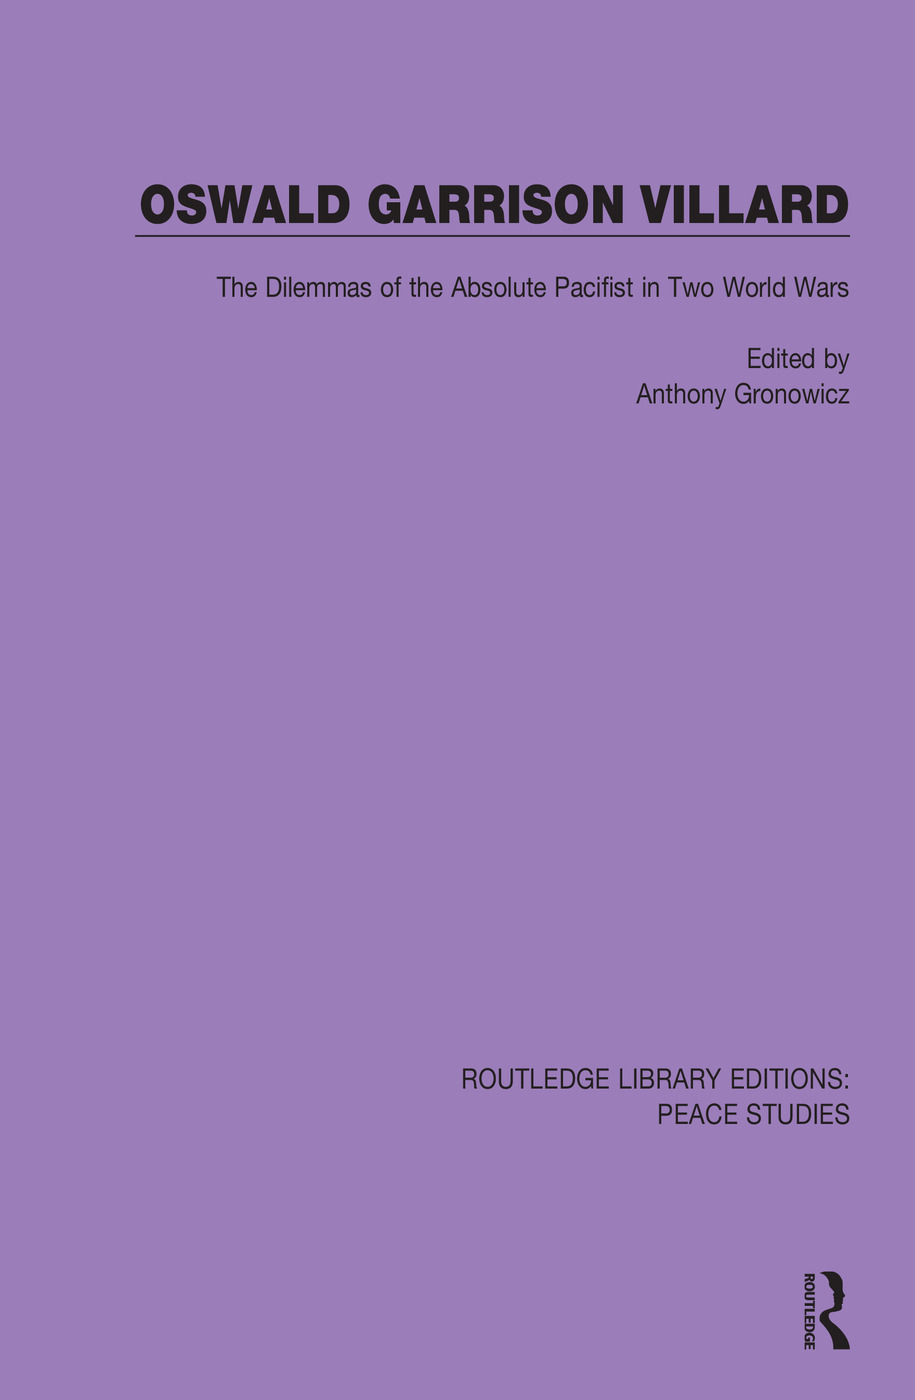 Oswald Garrison Villard: The Dilemmas of the Absolute Pacifist in Two World Wars book cover